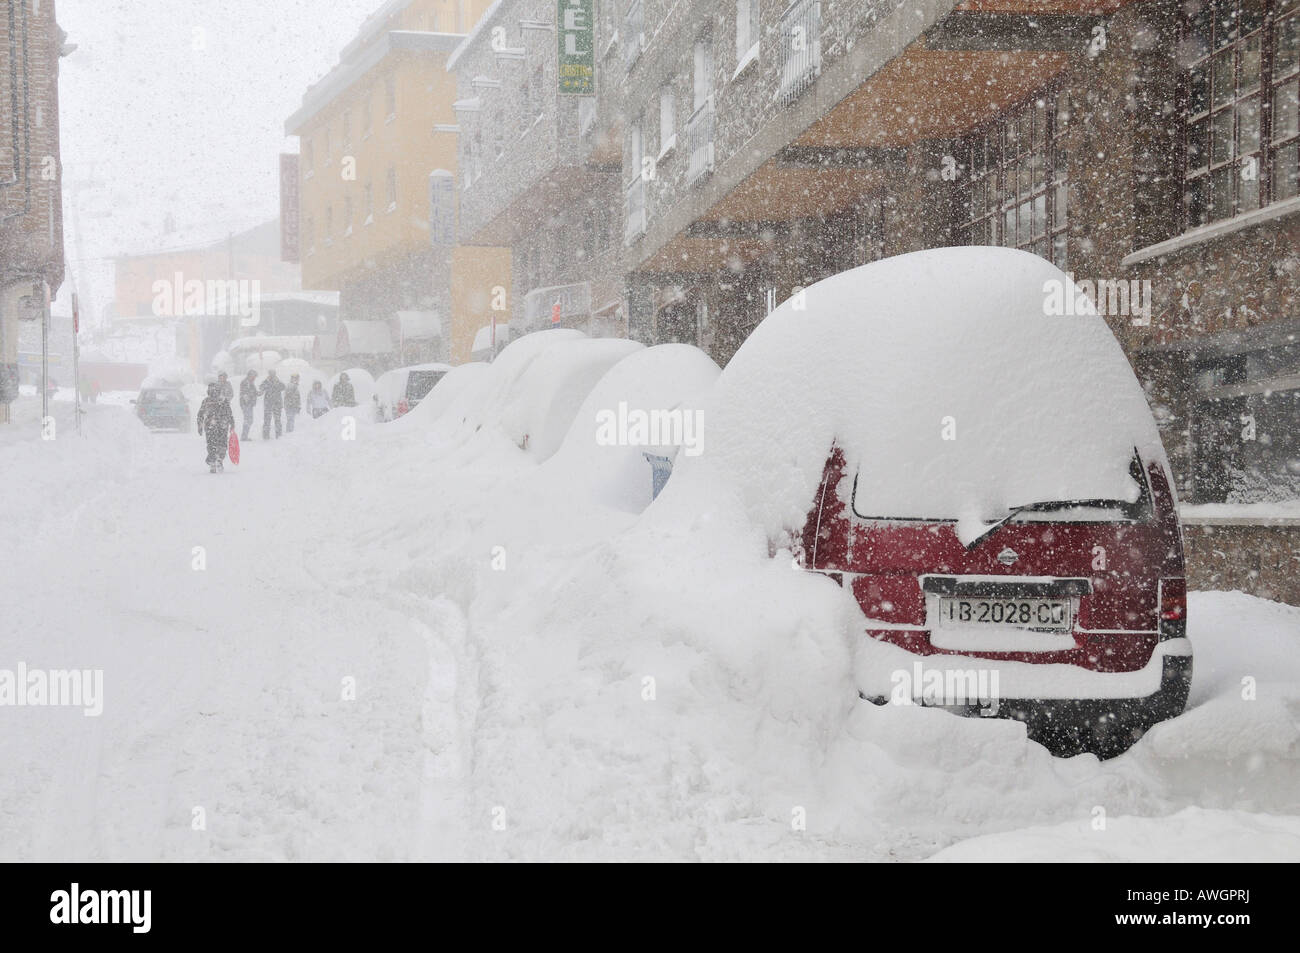 Snow blizzard in Pas de la Casa, Andorra - heavy snowing, extreme weather - Stock Image